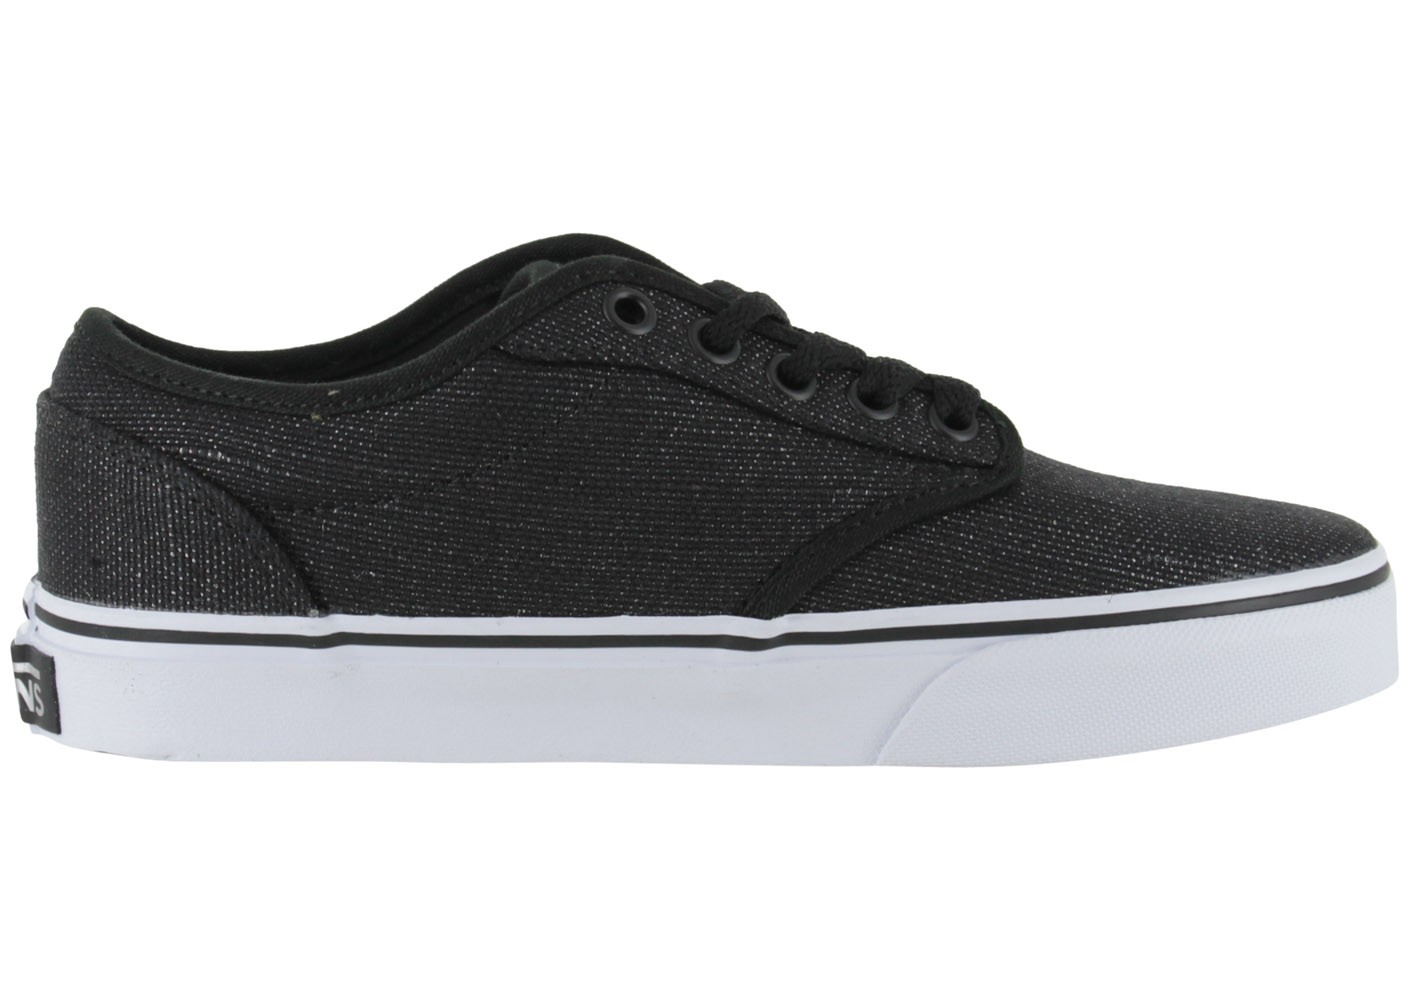 Vans Atwood Low Noir Brillant - Chaussures Chaussures - Chausport